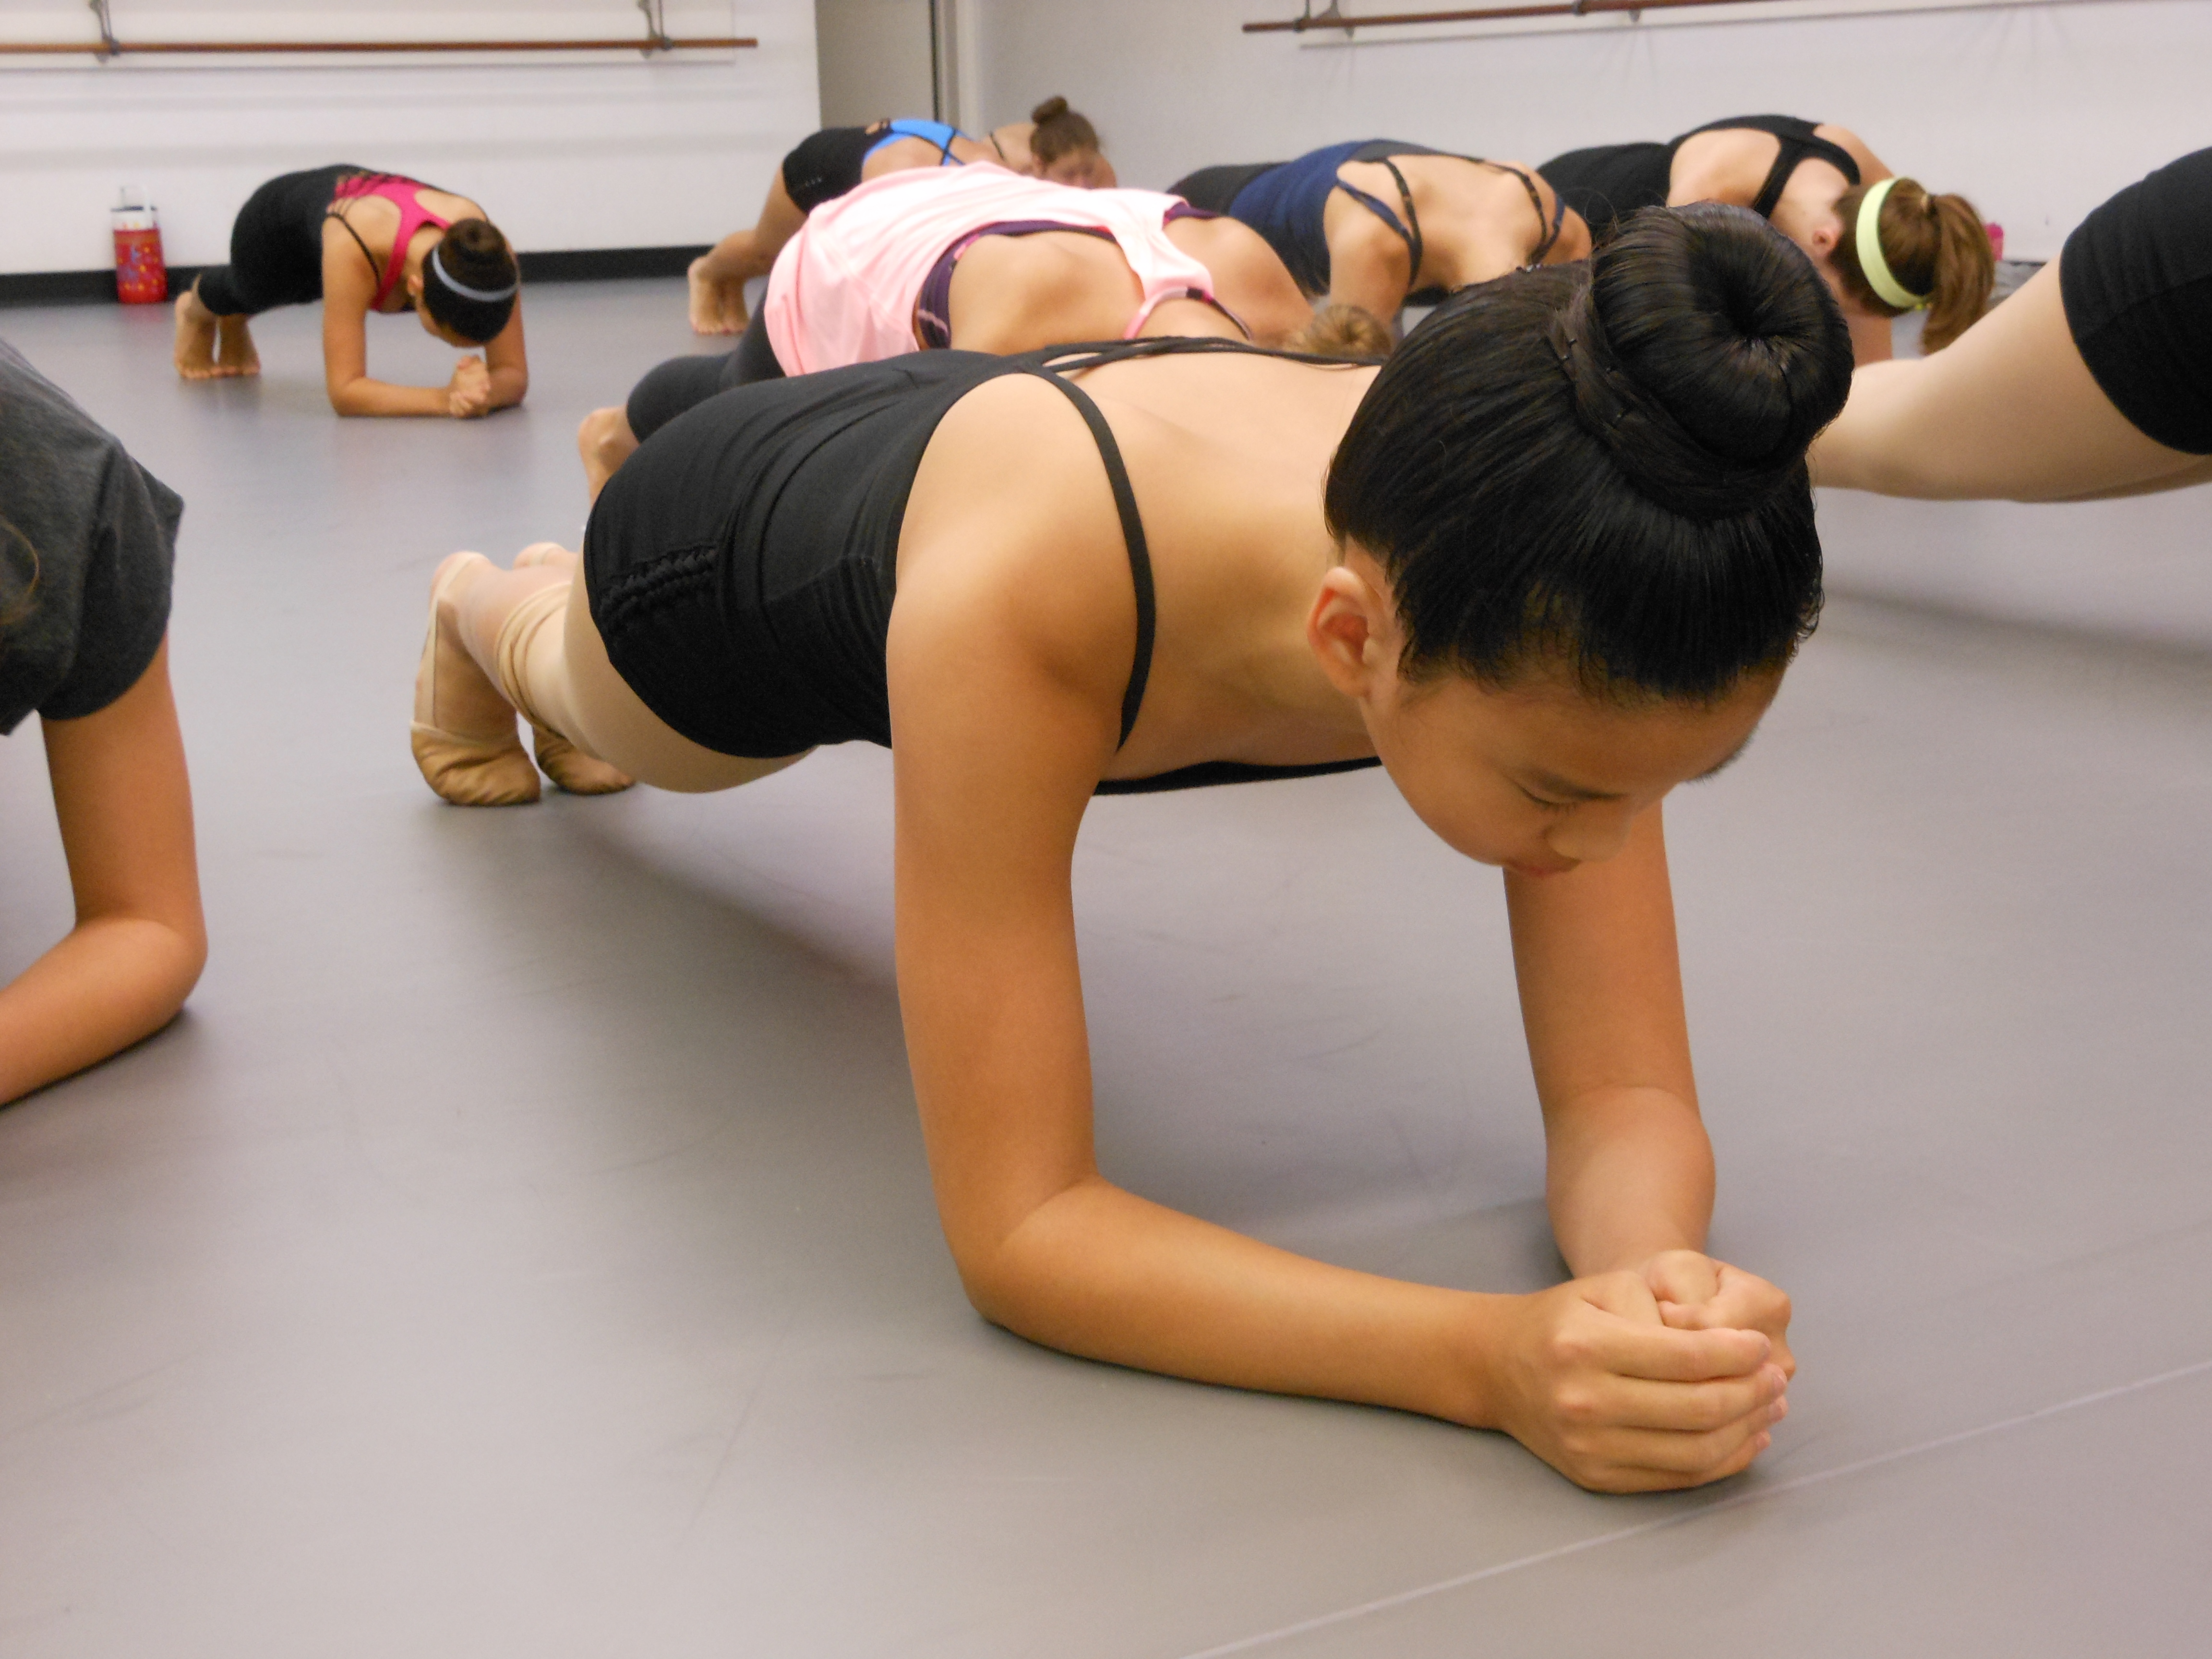 The Houston Academy of Dance is hosting its second boot camp session for intermediate and advanced dancers the first week of August.